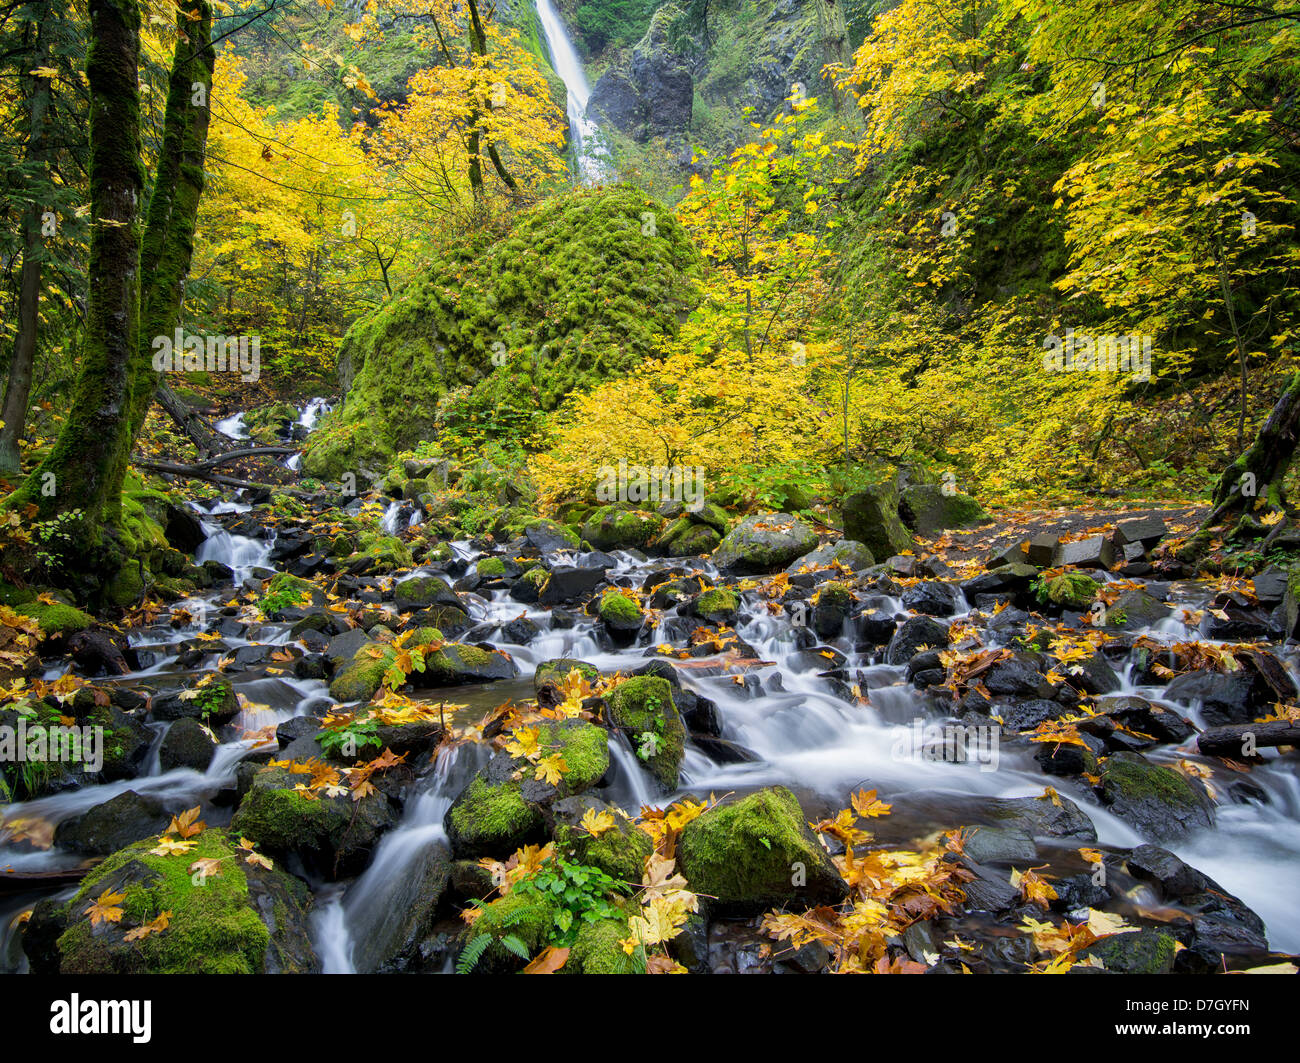 Starvation Creek and waterfalls with fall colors.Columbia River Gorge National Scenic Area, Oregon - Stock Image